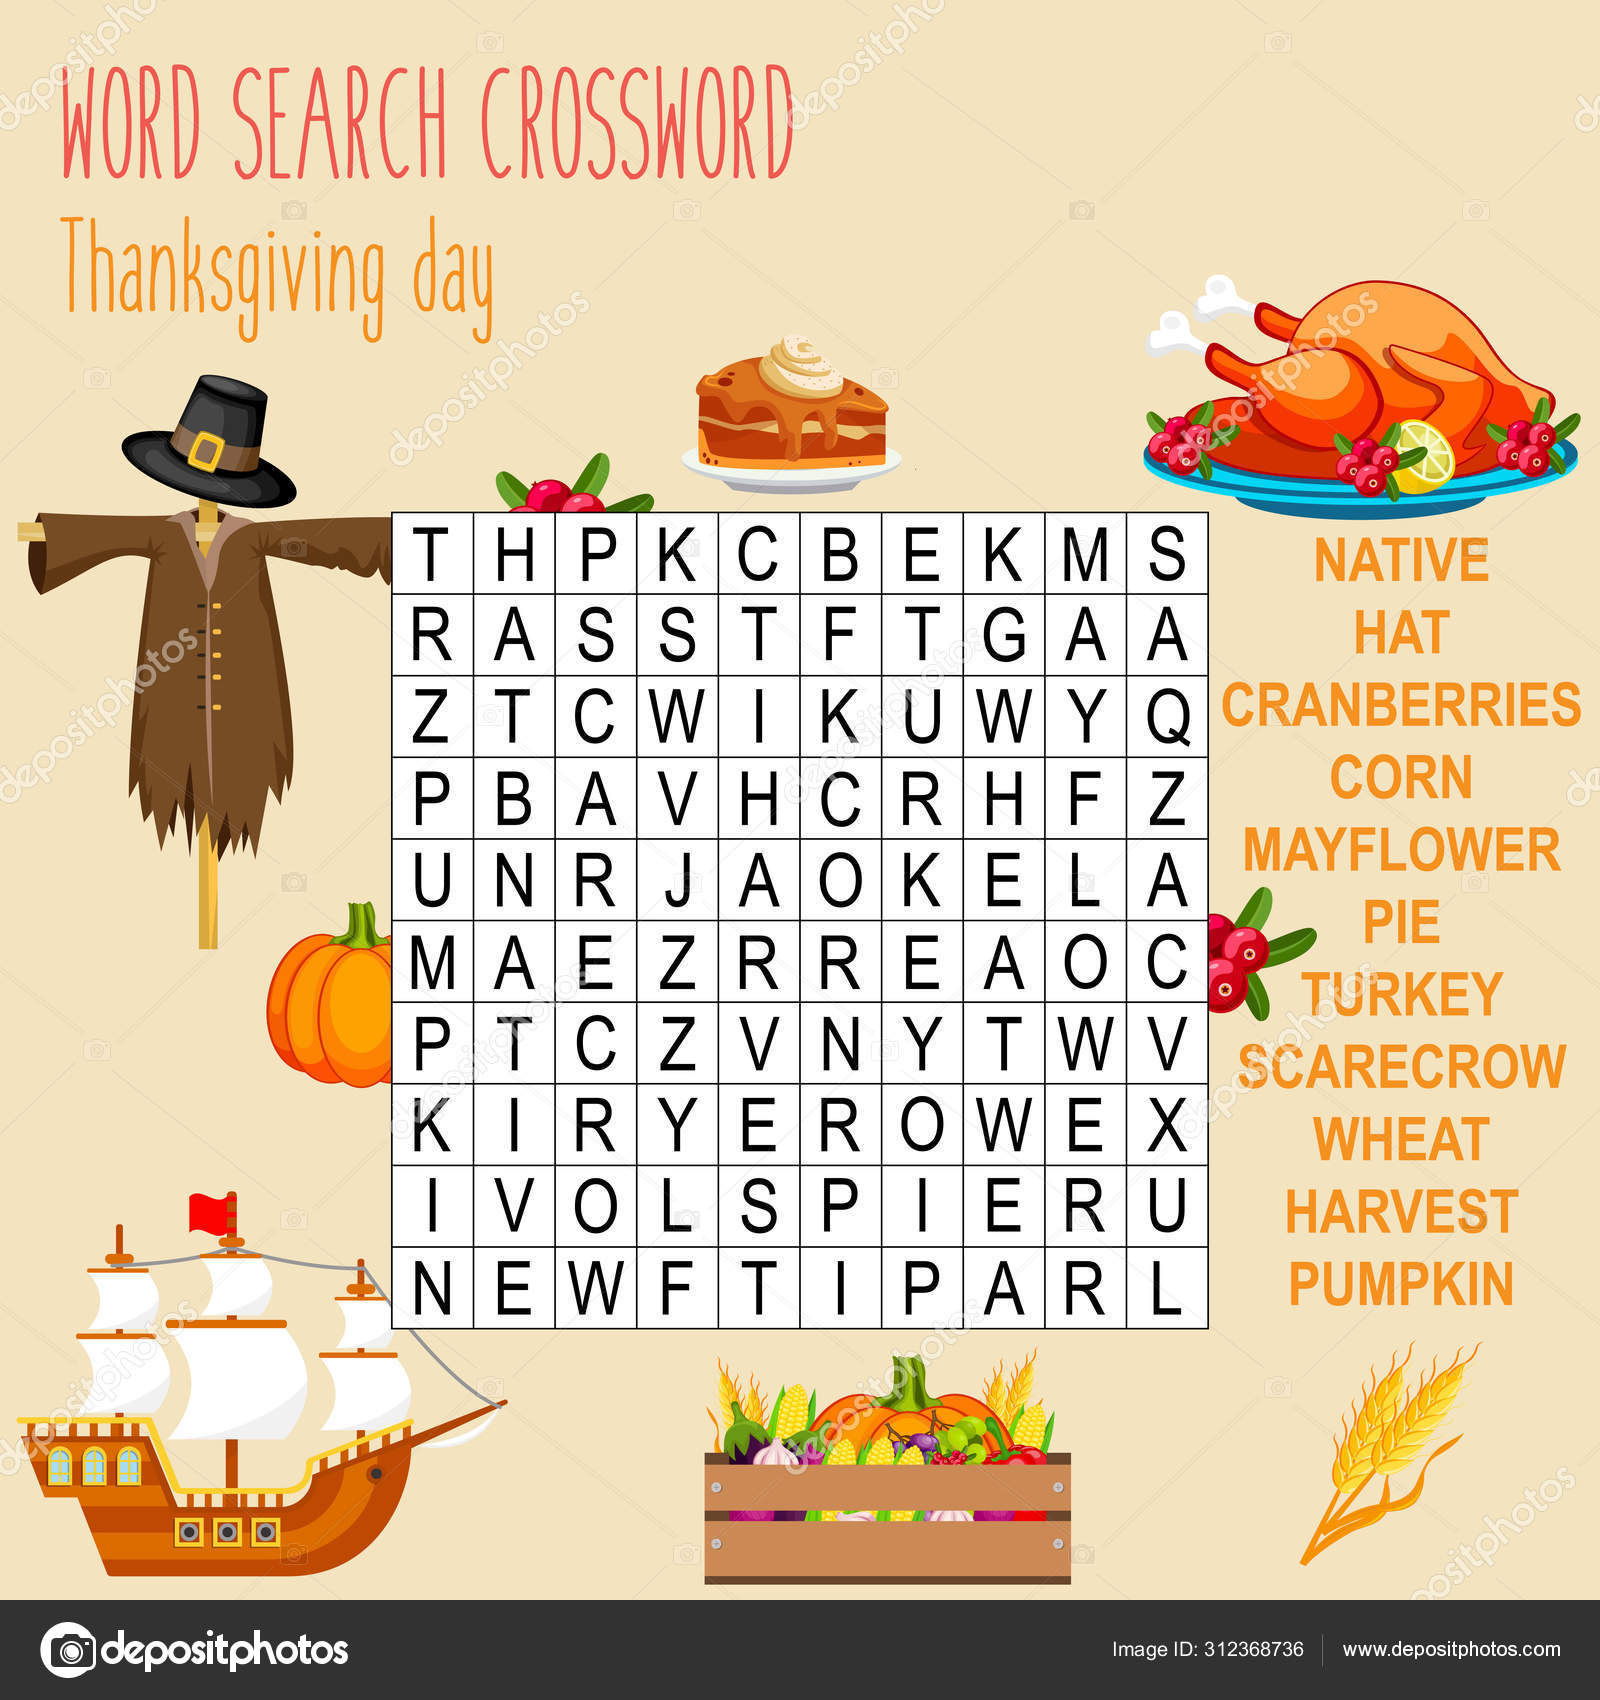 Easy Word Search Crossword Puzzle Thanksgiving Day Children